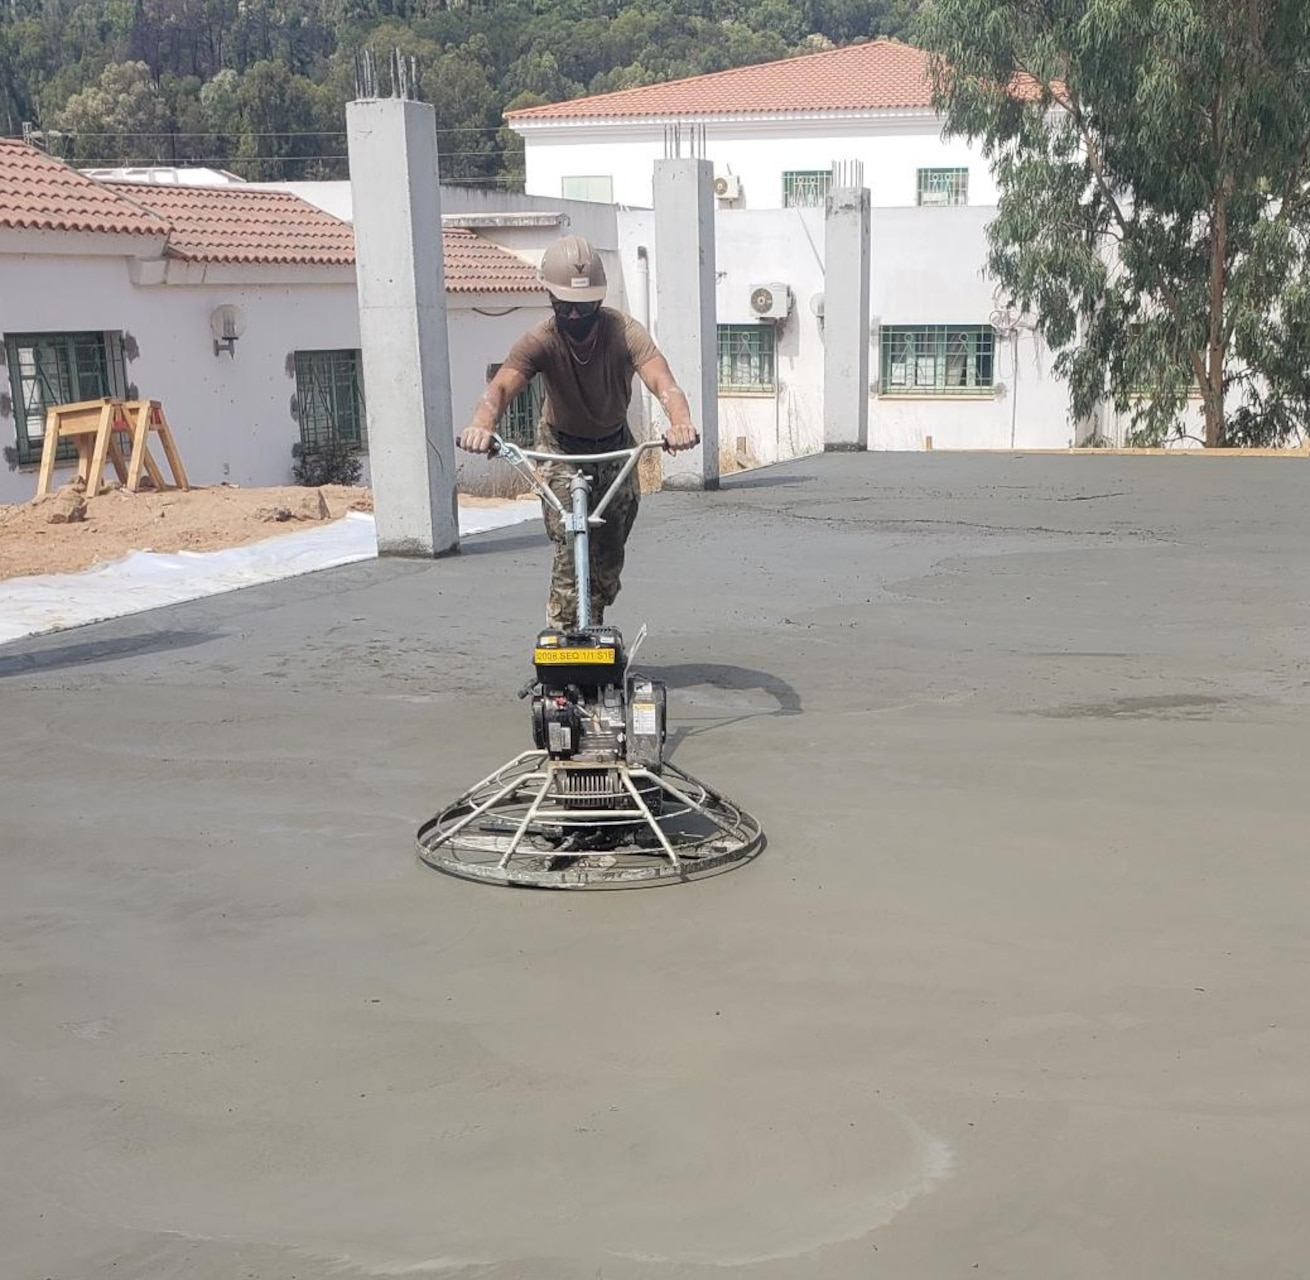 Builder Constructionman 3rd Class Rylee McGuire from Naval Mobile Construction Battalion 11, finishes the concrete floor slab in Tabarka, Tunisia, Aug. 18, 2021.